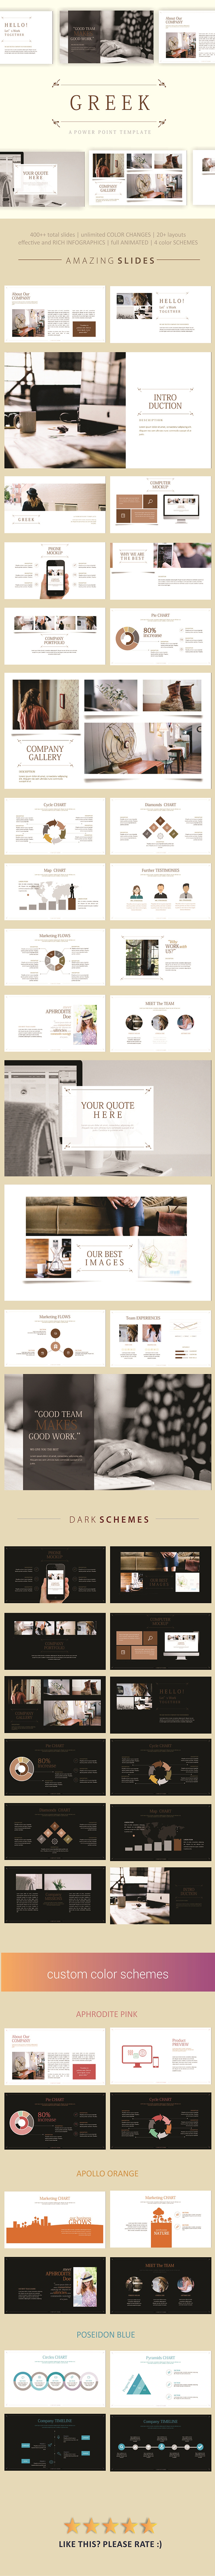 Greek PowerPoint Template - Business PowerPoint Templates